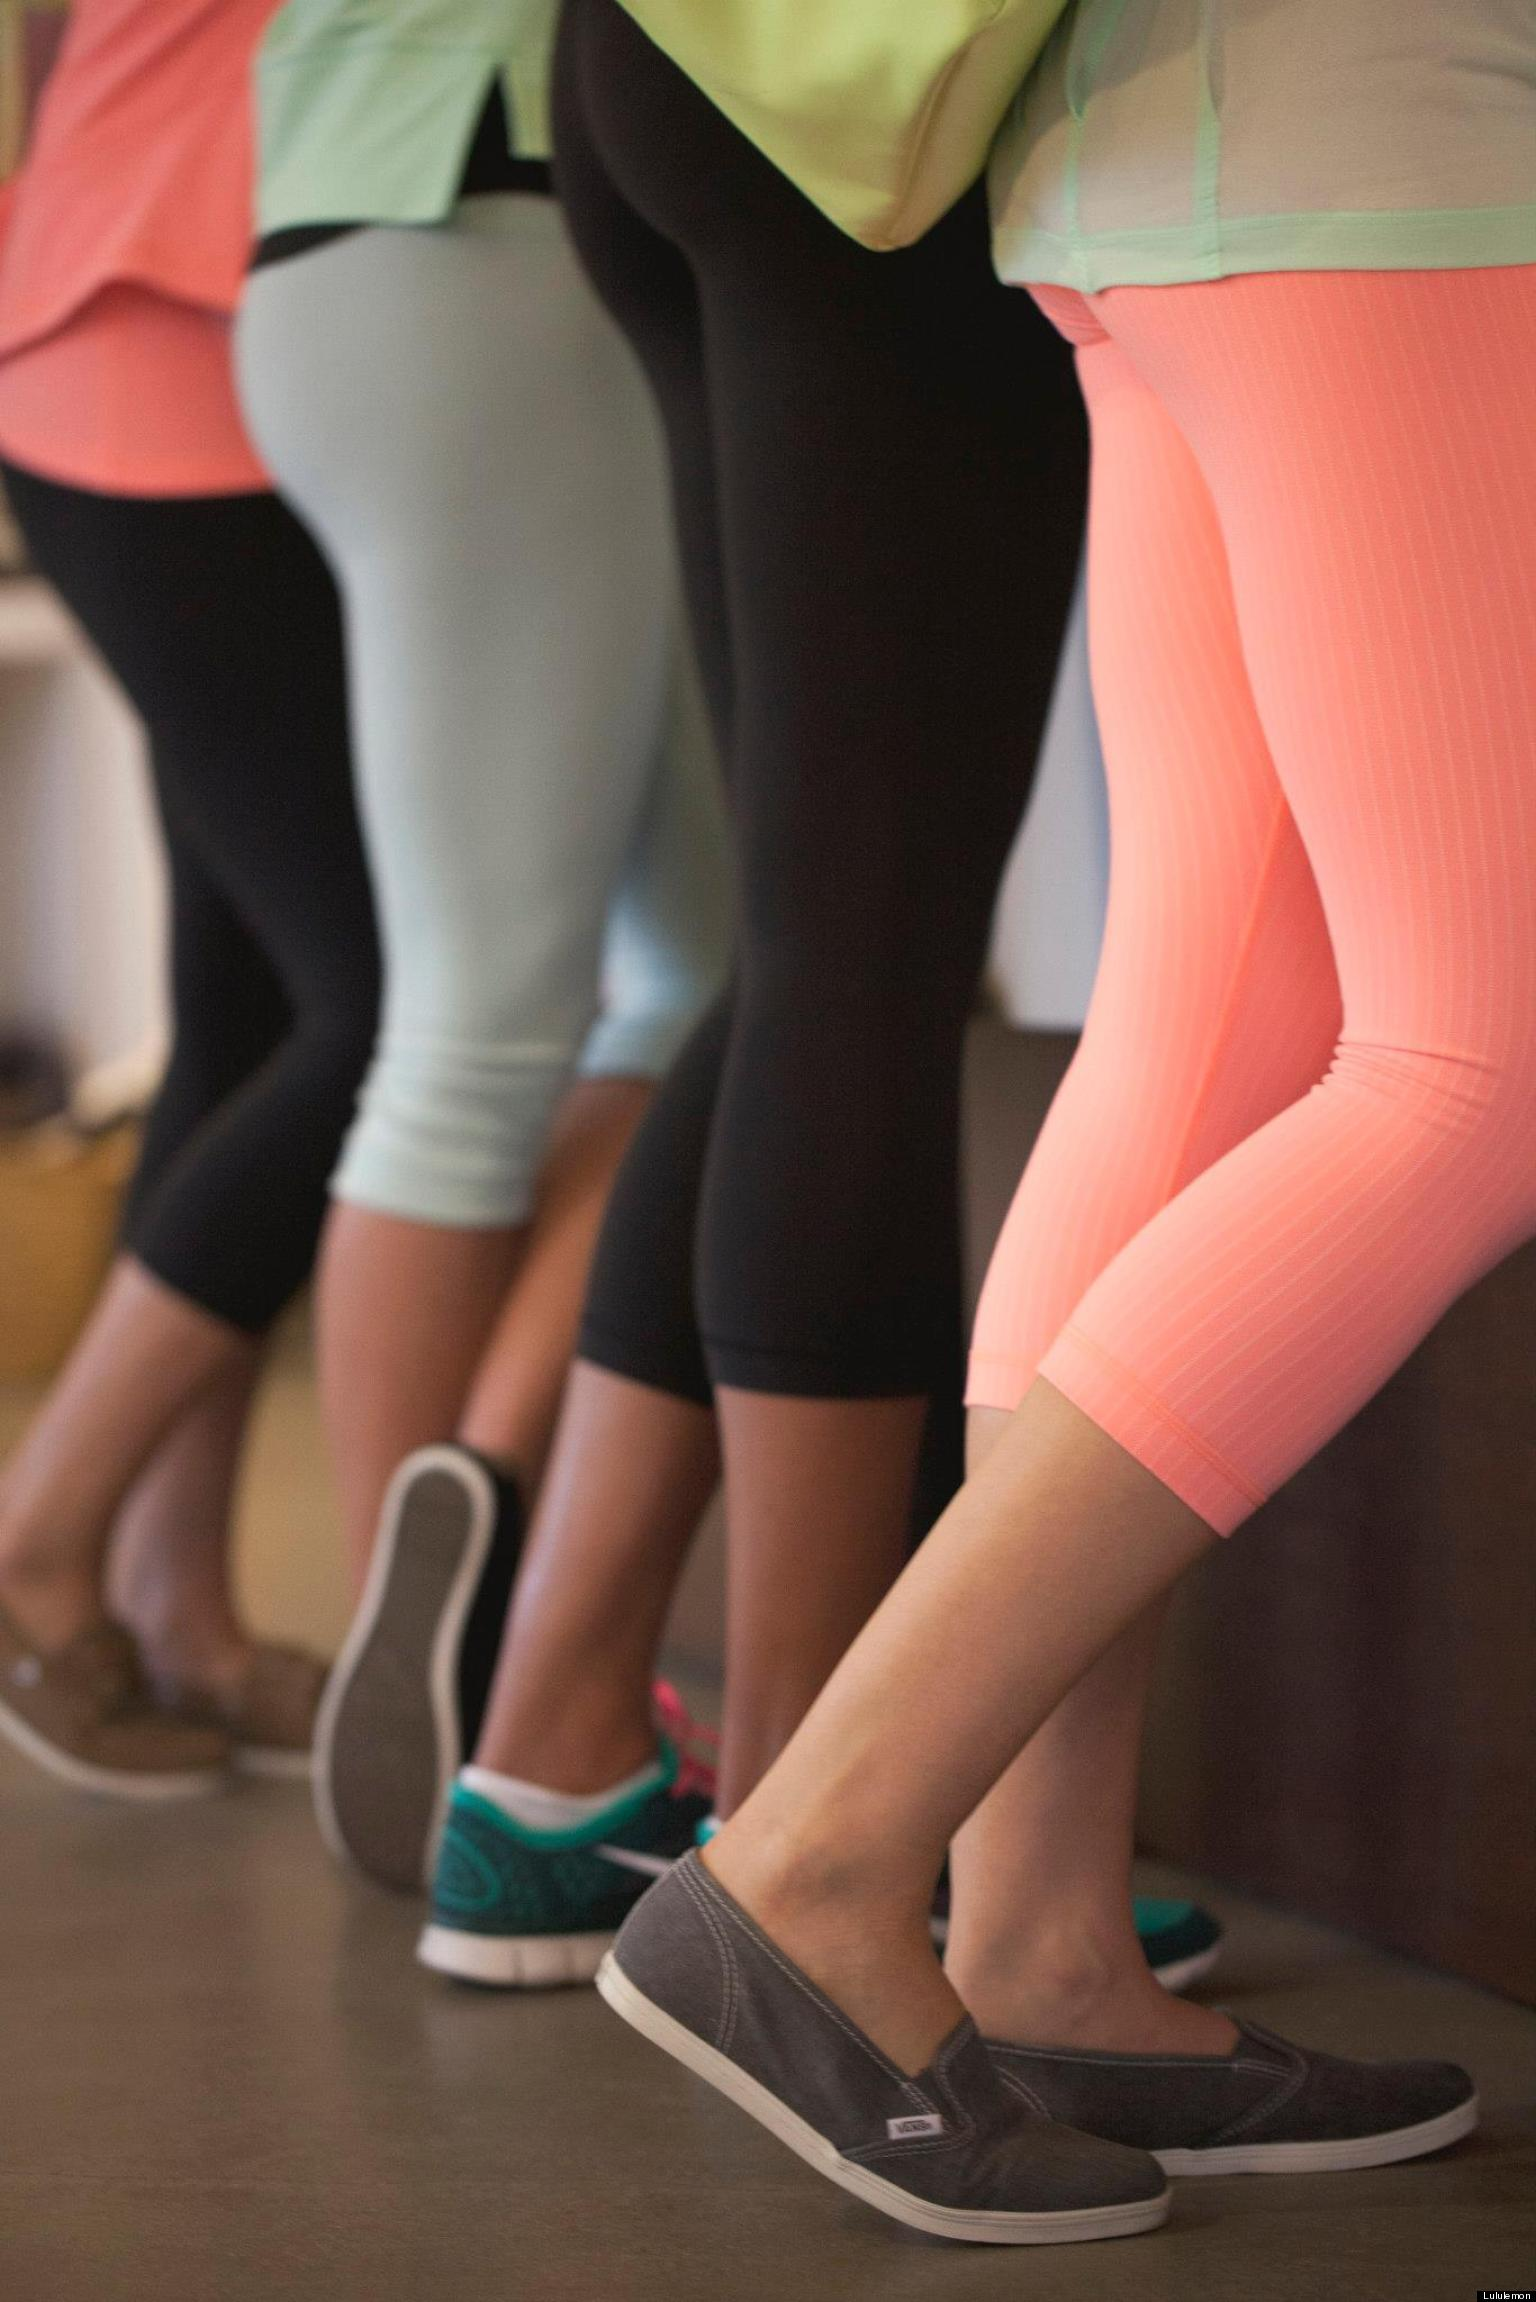 Lululemon CEO Ad Seeks Exec Who 'Can Hold Headstand For 10